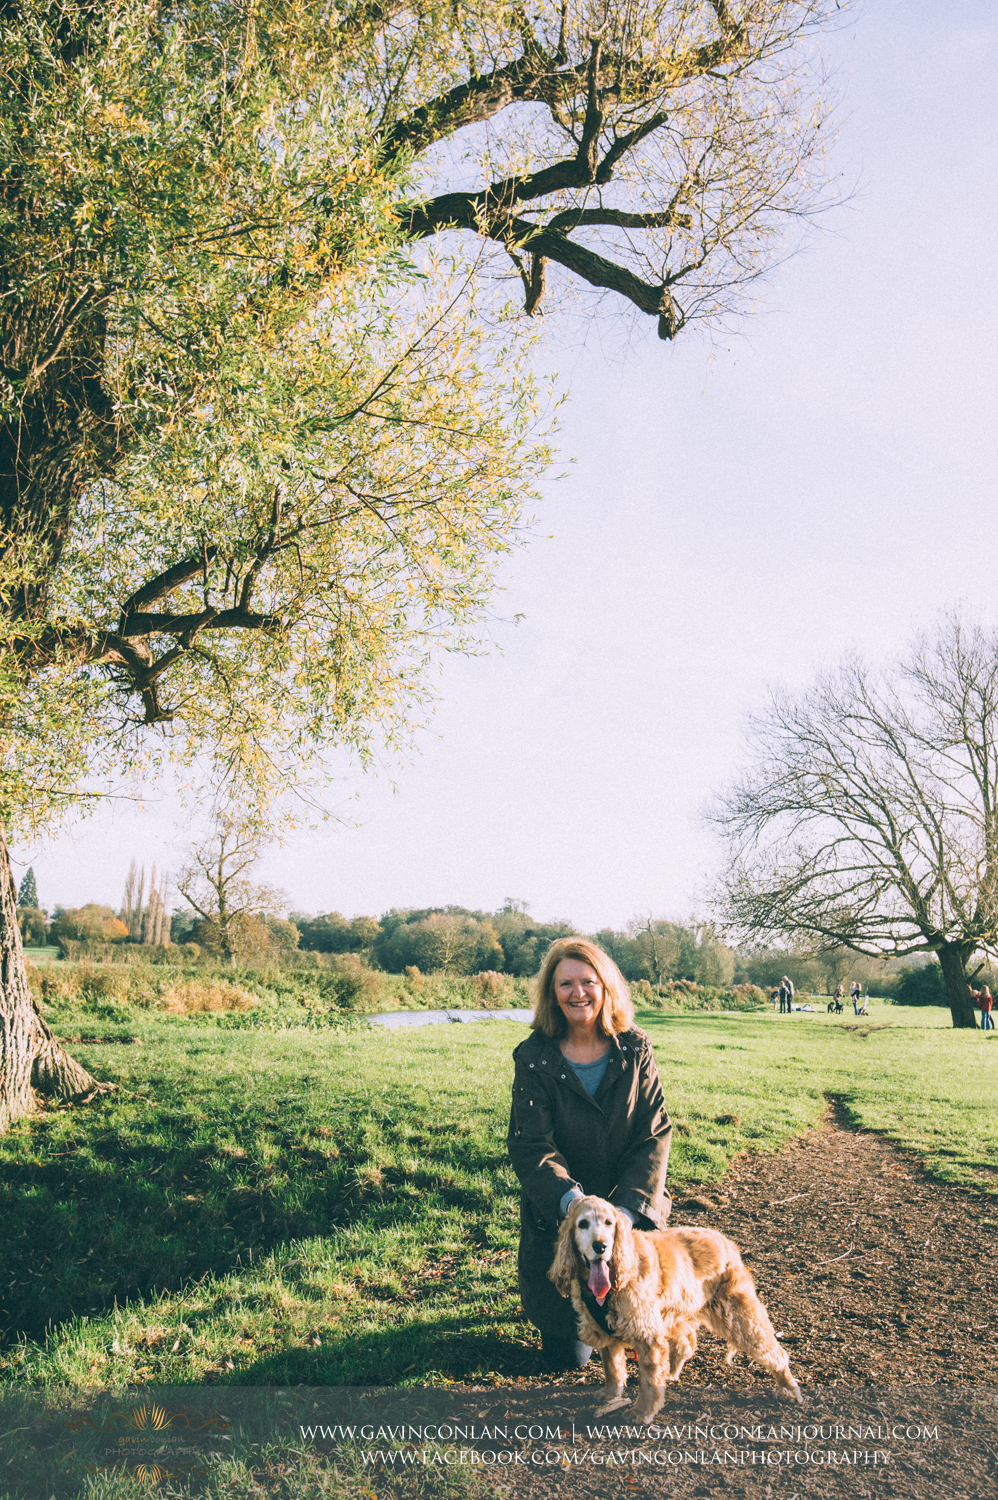 mum and holly at Grantchester Meadows, Cambridgeshire